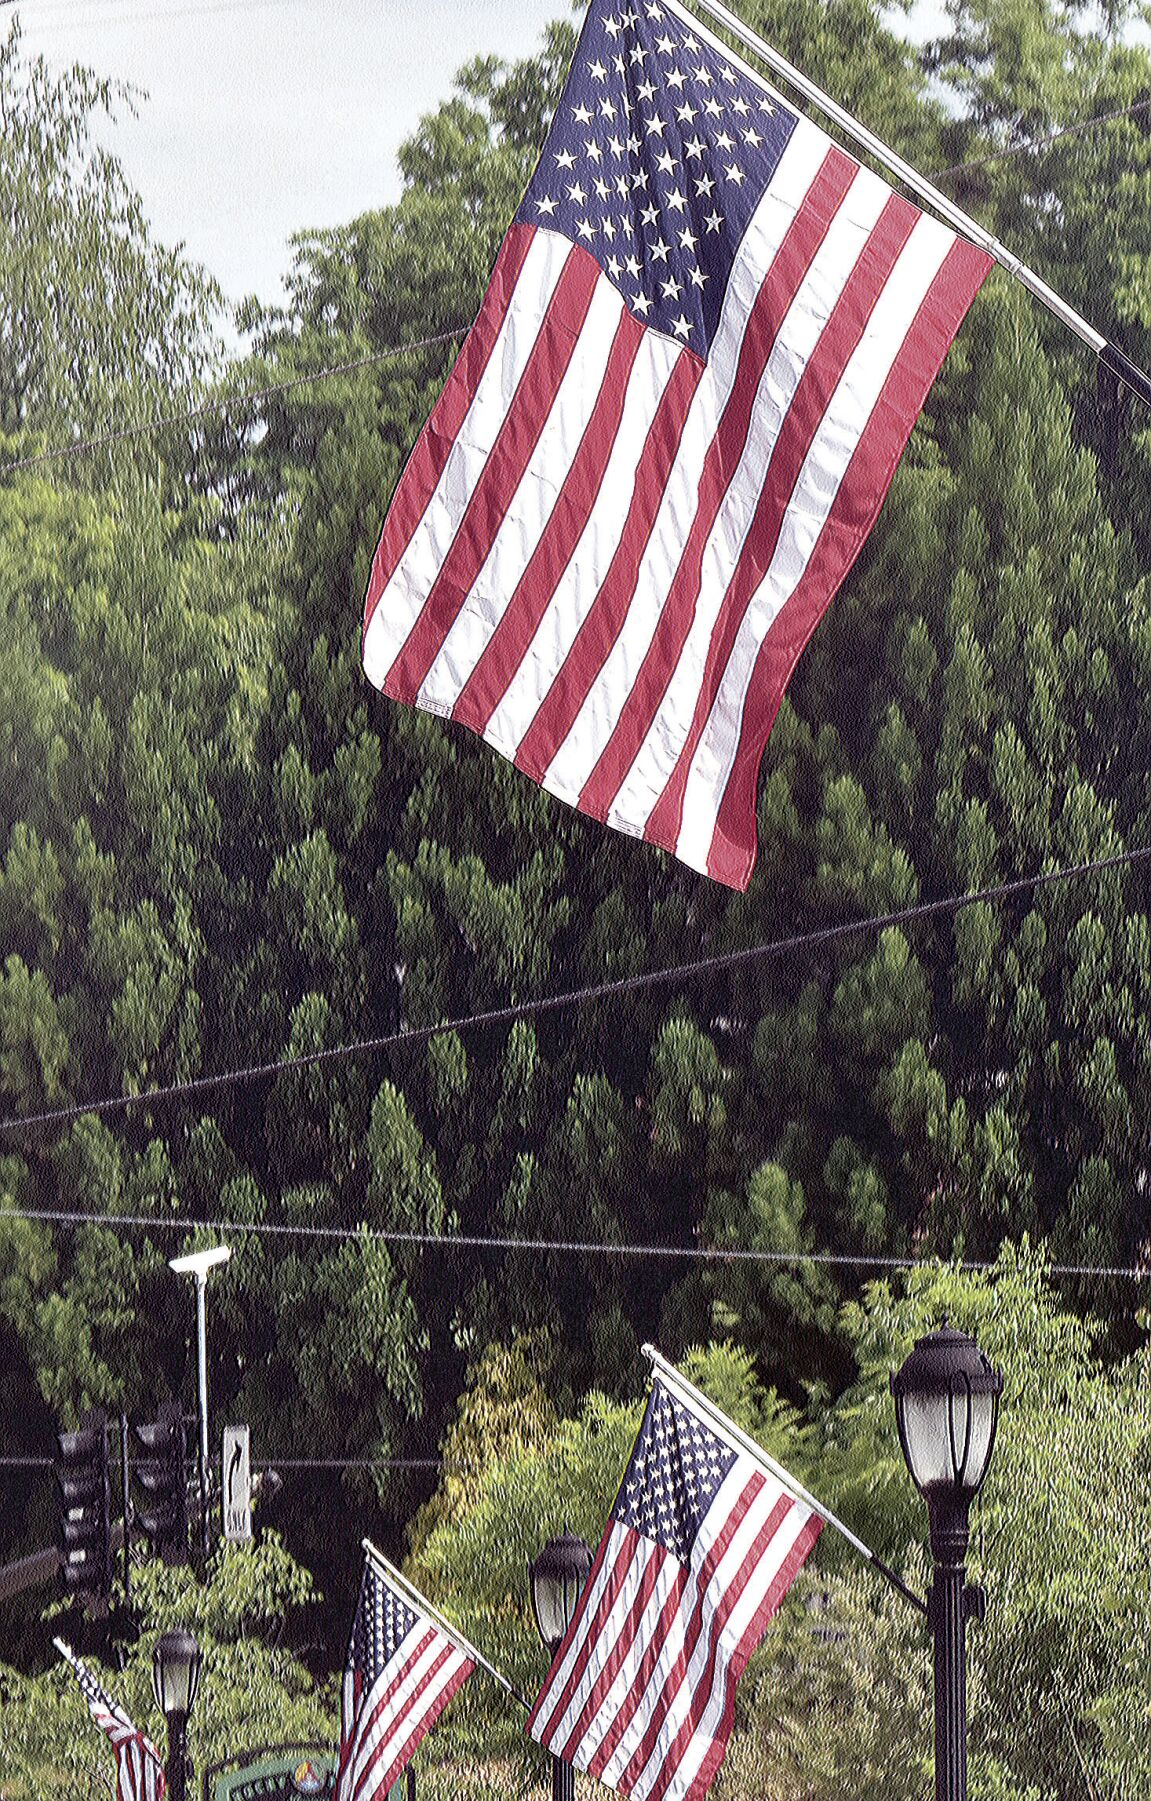 County citizens pay homage to local military heroes